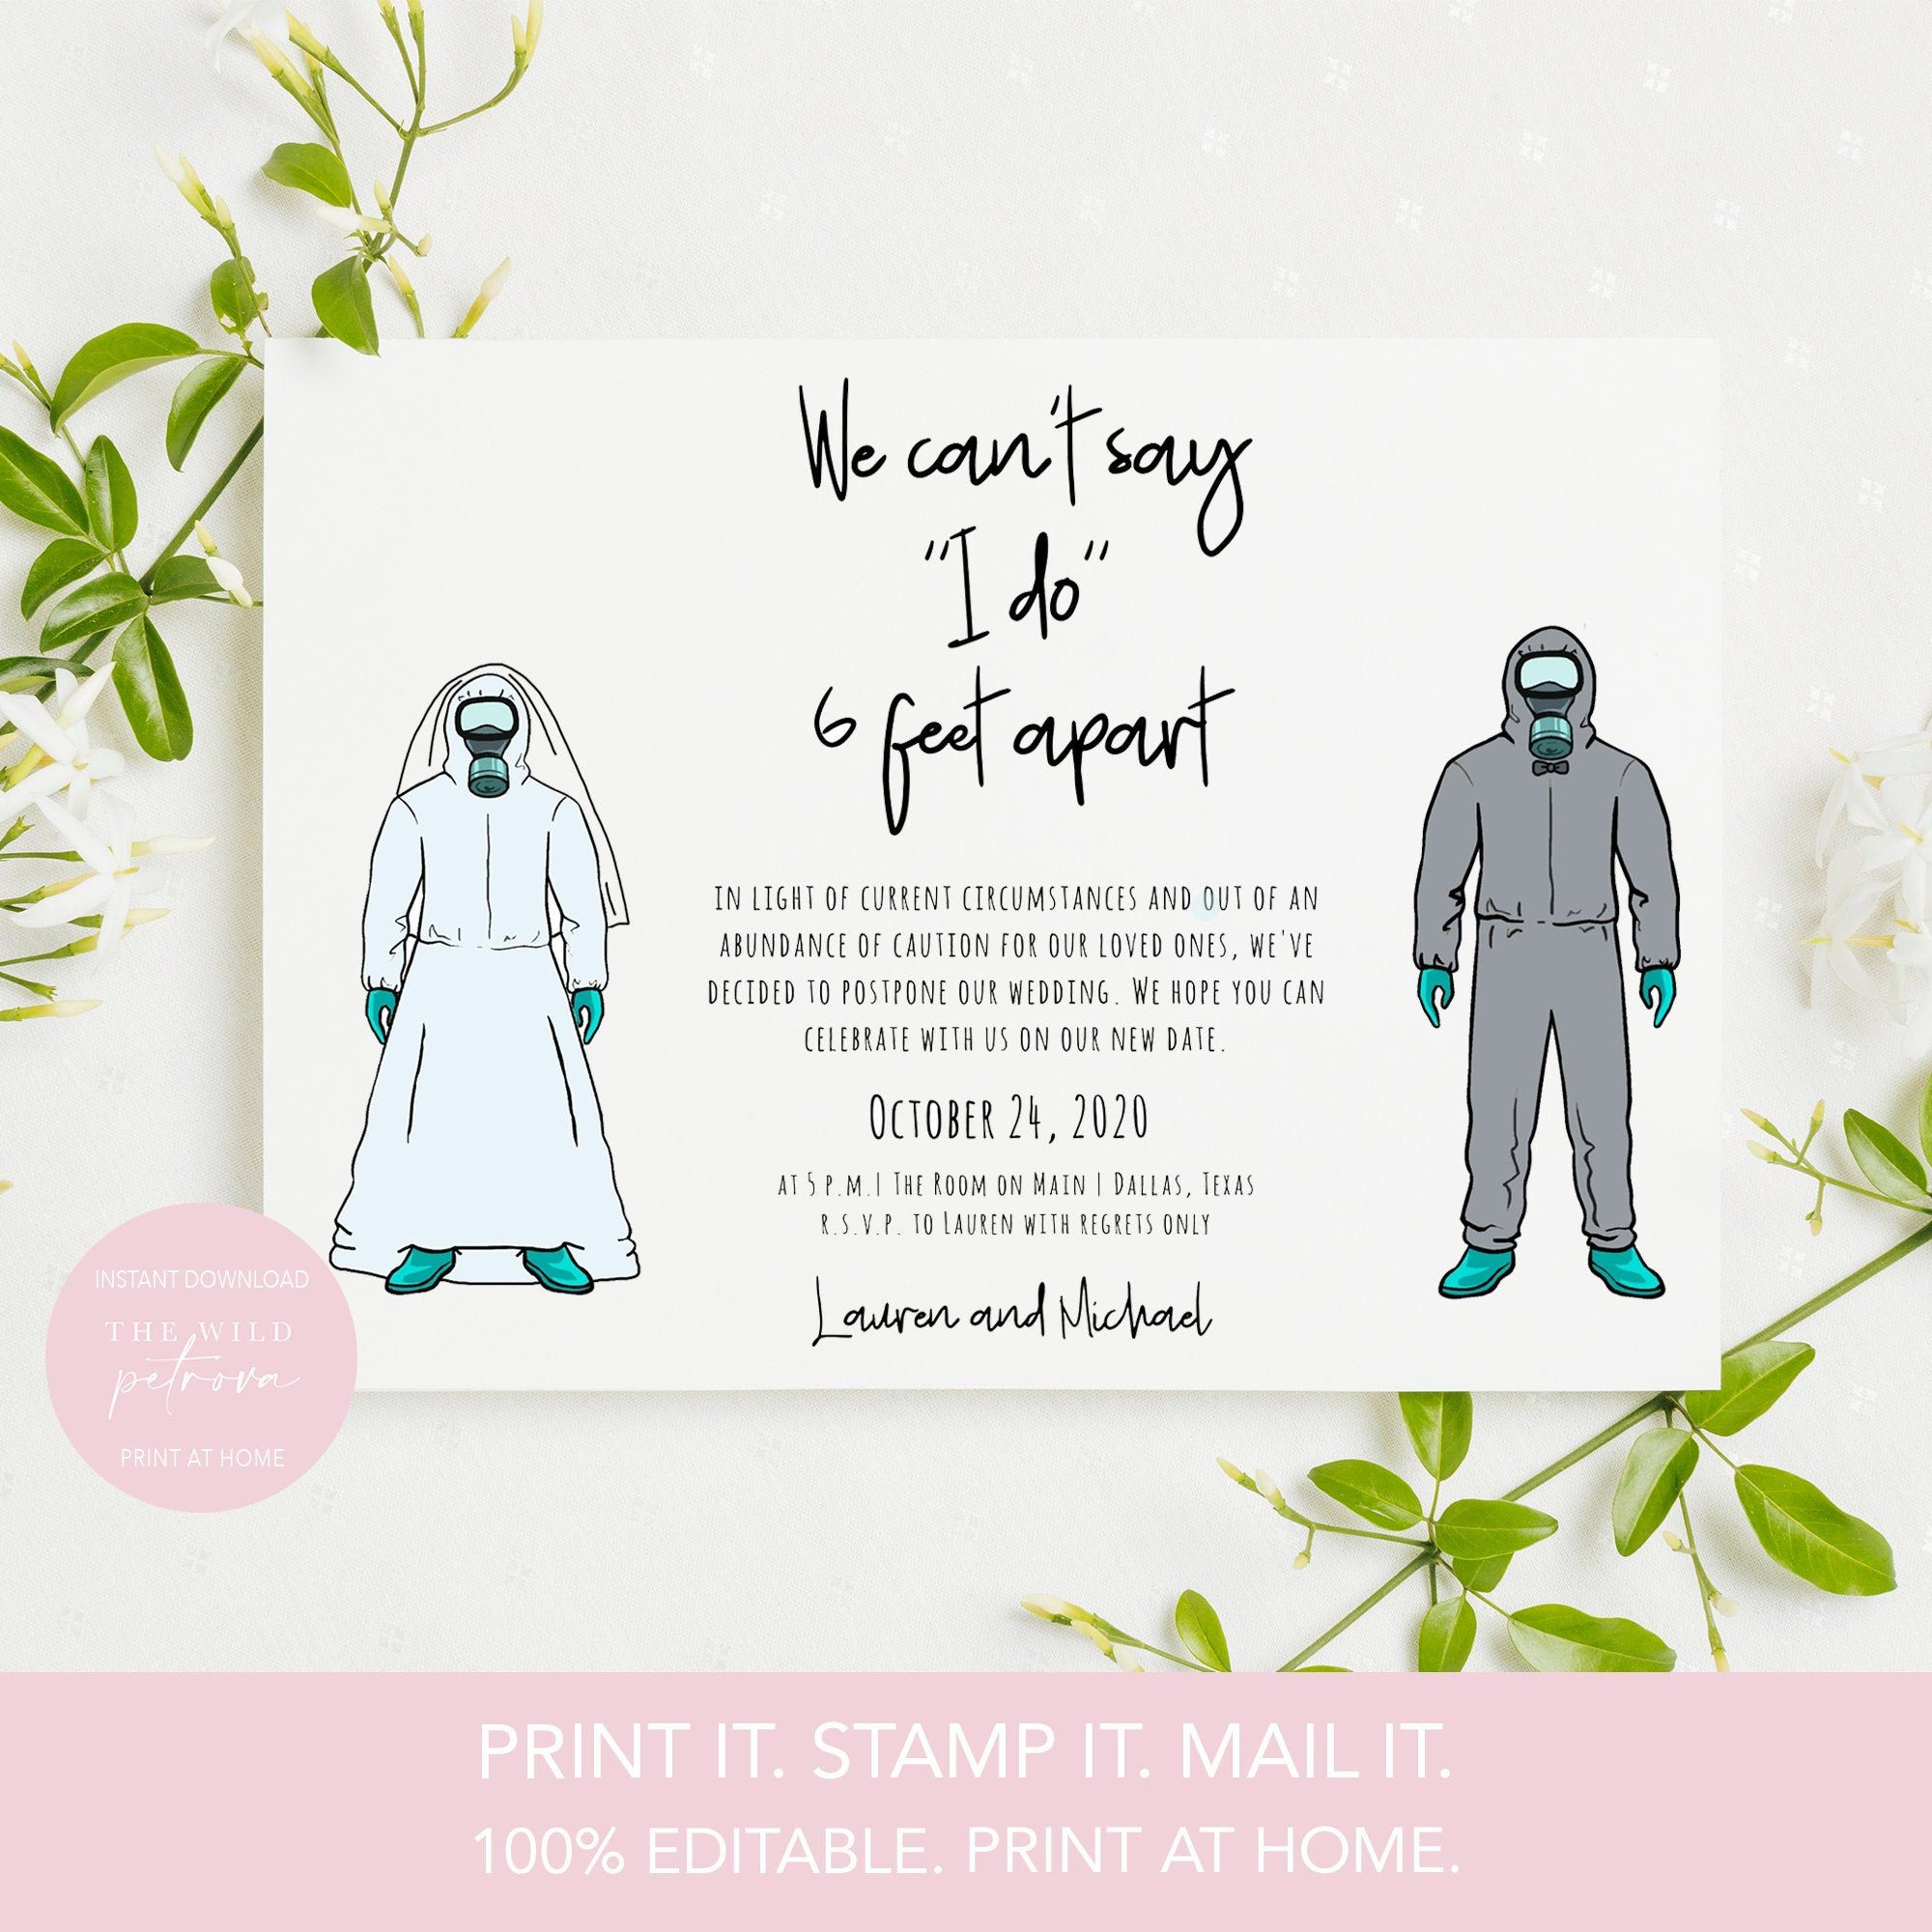 Printable Change The Date Card Template Postponed Wedding Postcard Funny Social Distancing Wedding Funny Wedding Cards Wedding Postcard Wedding Announcements